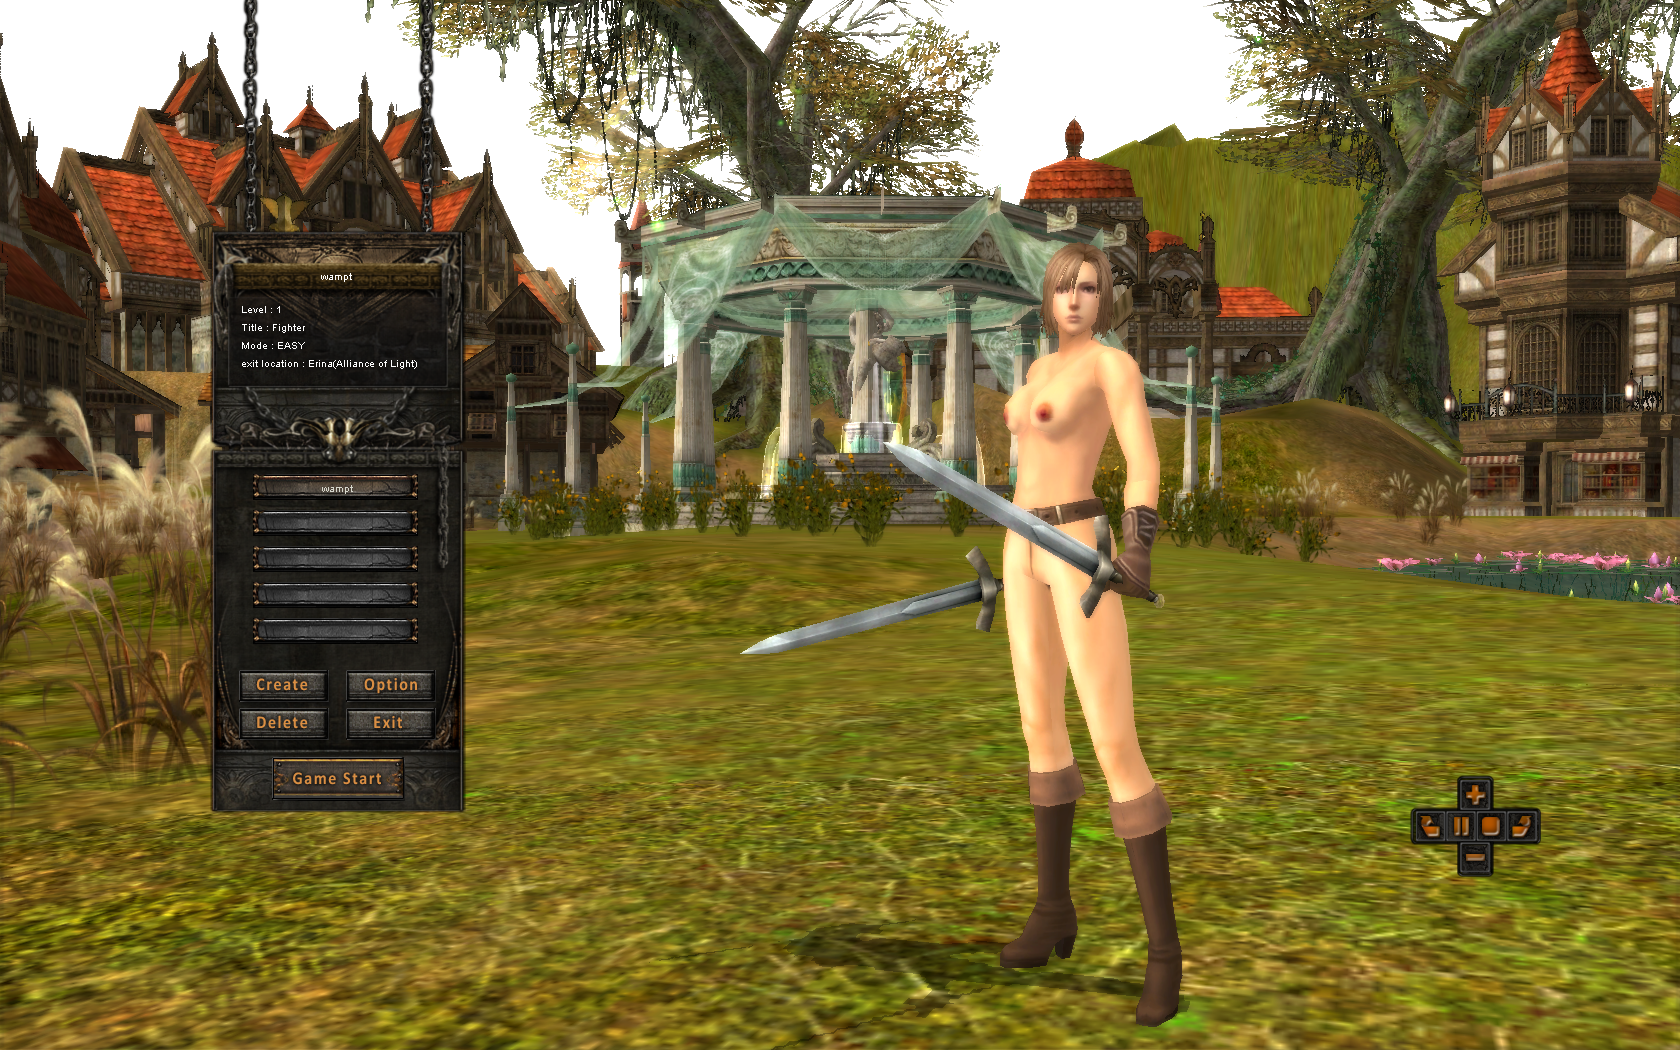 Porno games mmo porncraft photos